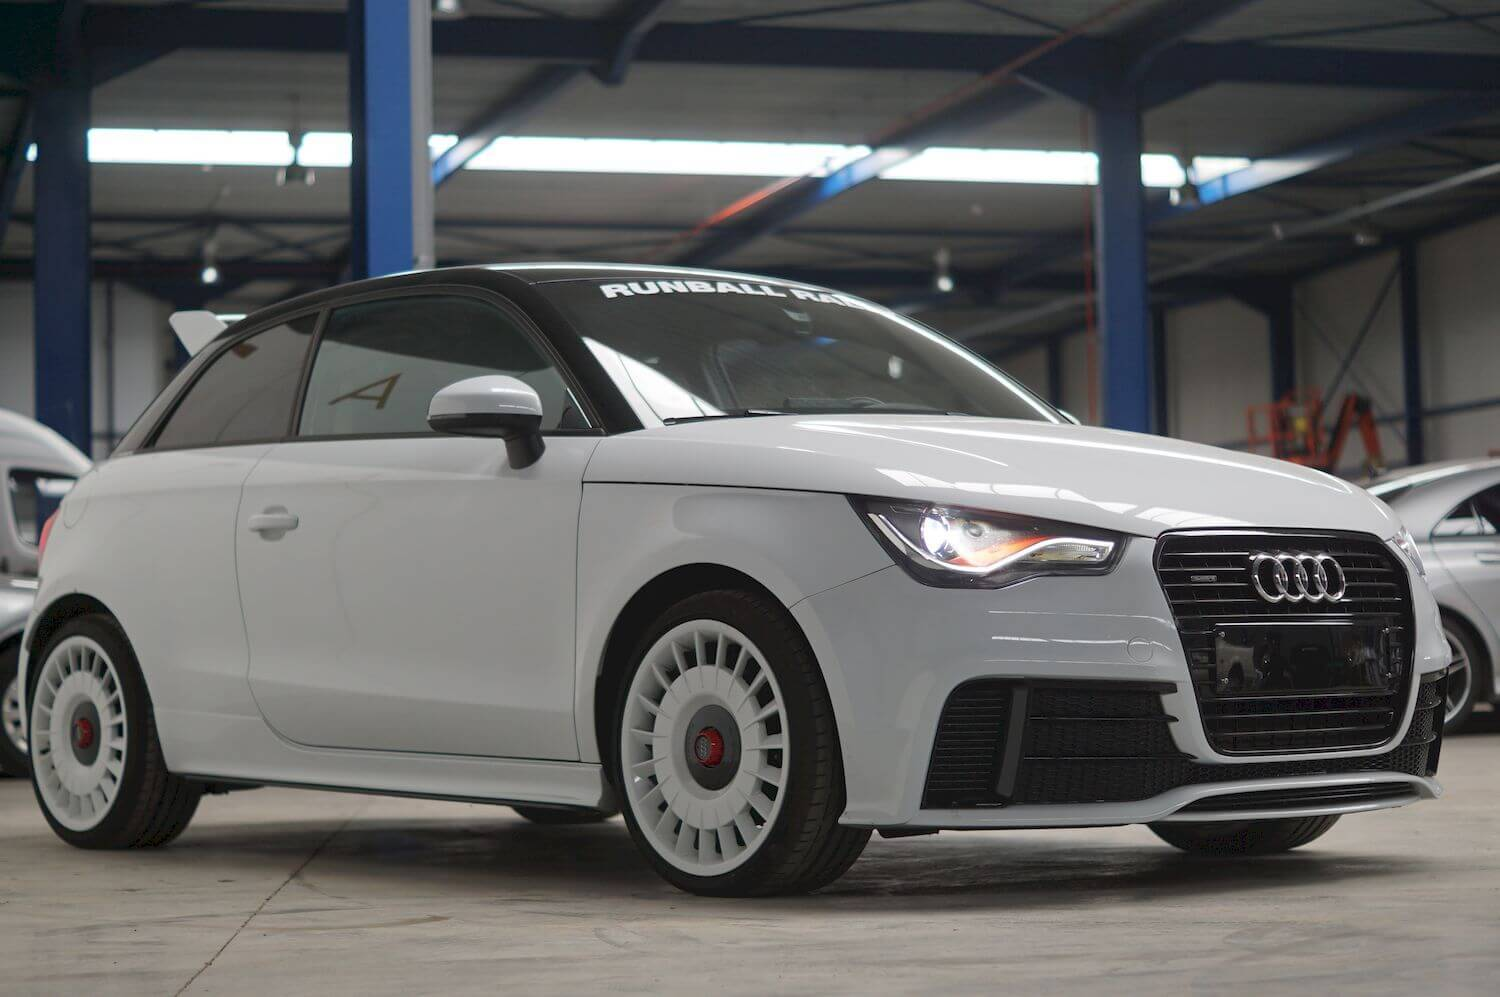 Super Rare Audi A1 Quattro With 252 Horsepower Heading To Auction